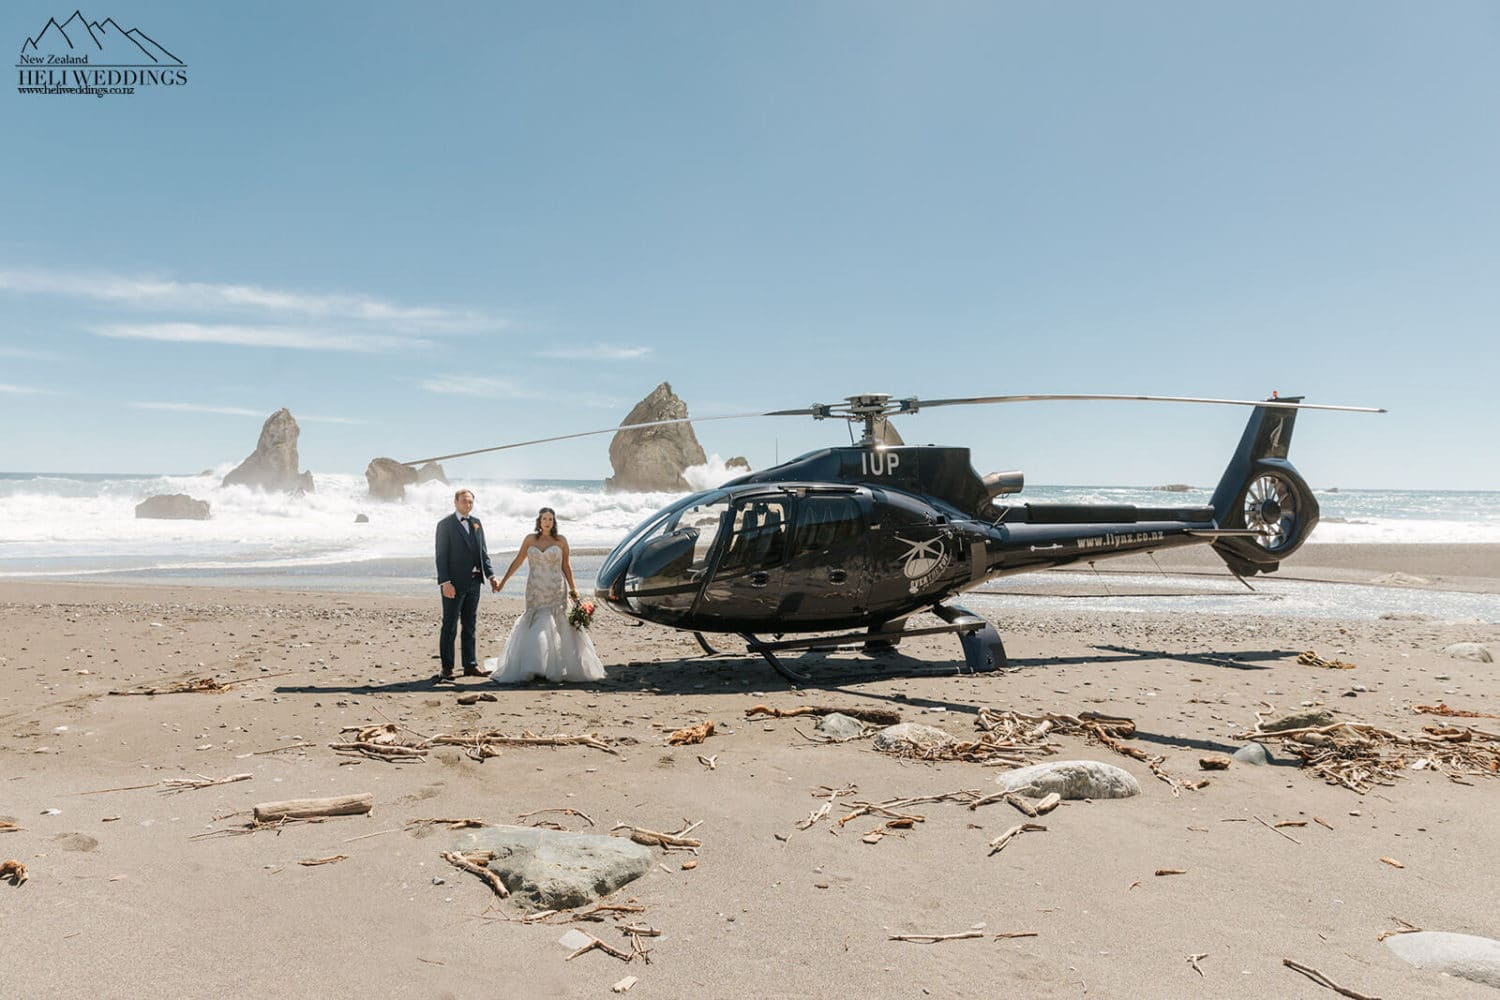 Heli Wedding on the beach outside Milford Sounds New Zealand